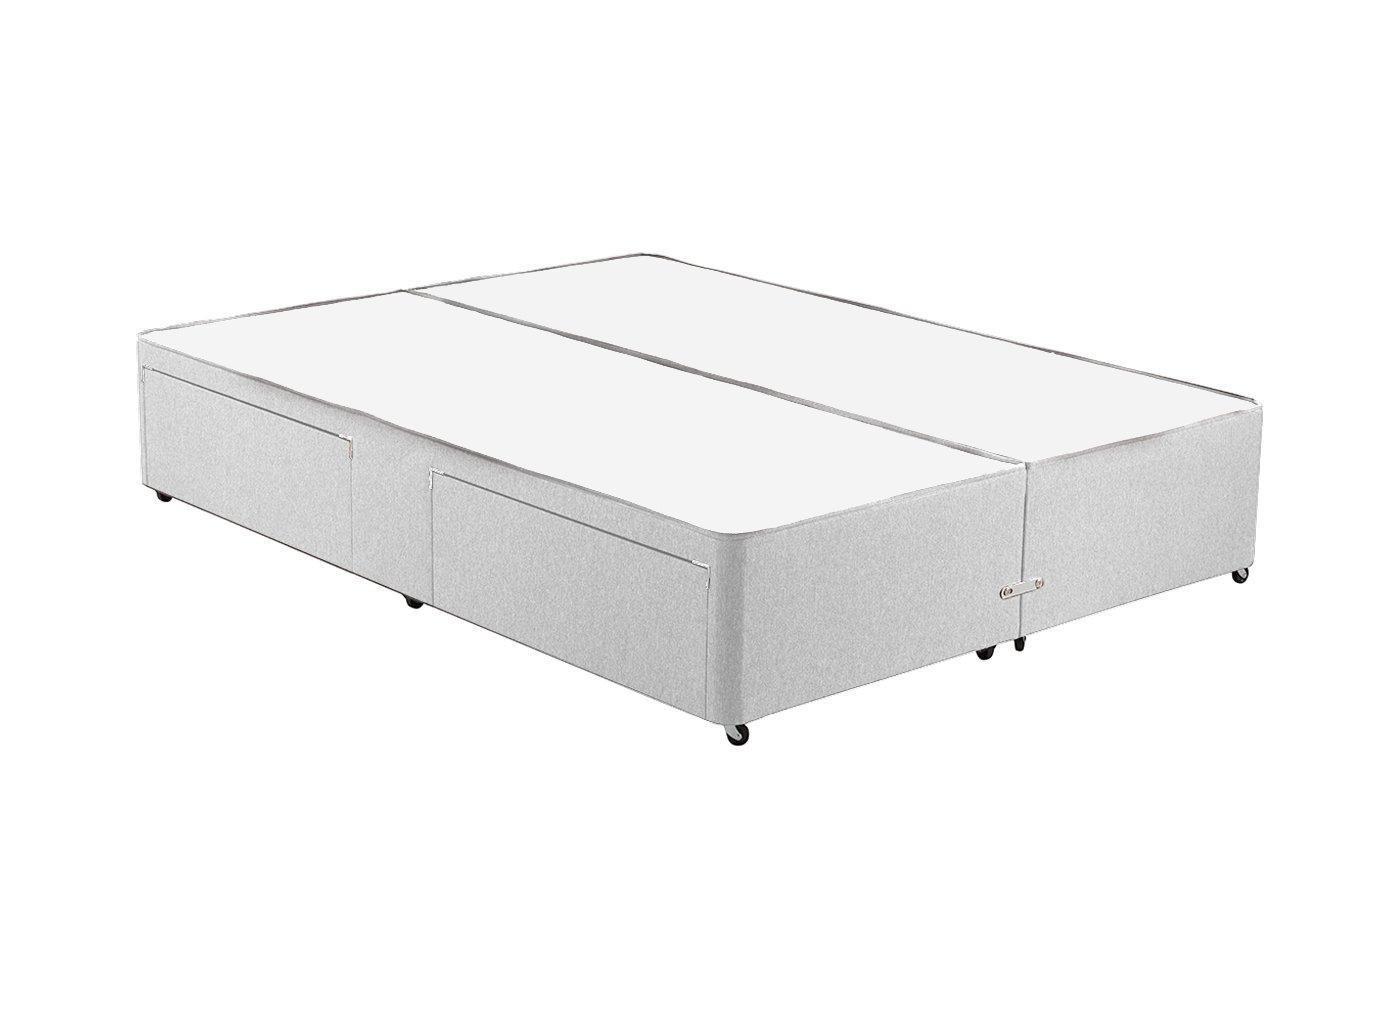 Divan Beds Cheap Classic Divan Base Classic Divan Bases Beds Dreams